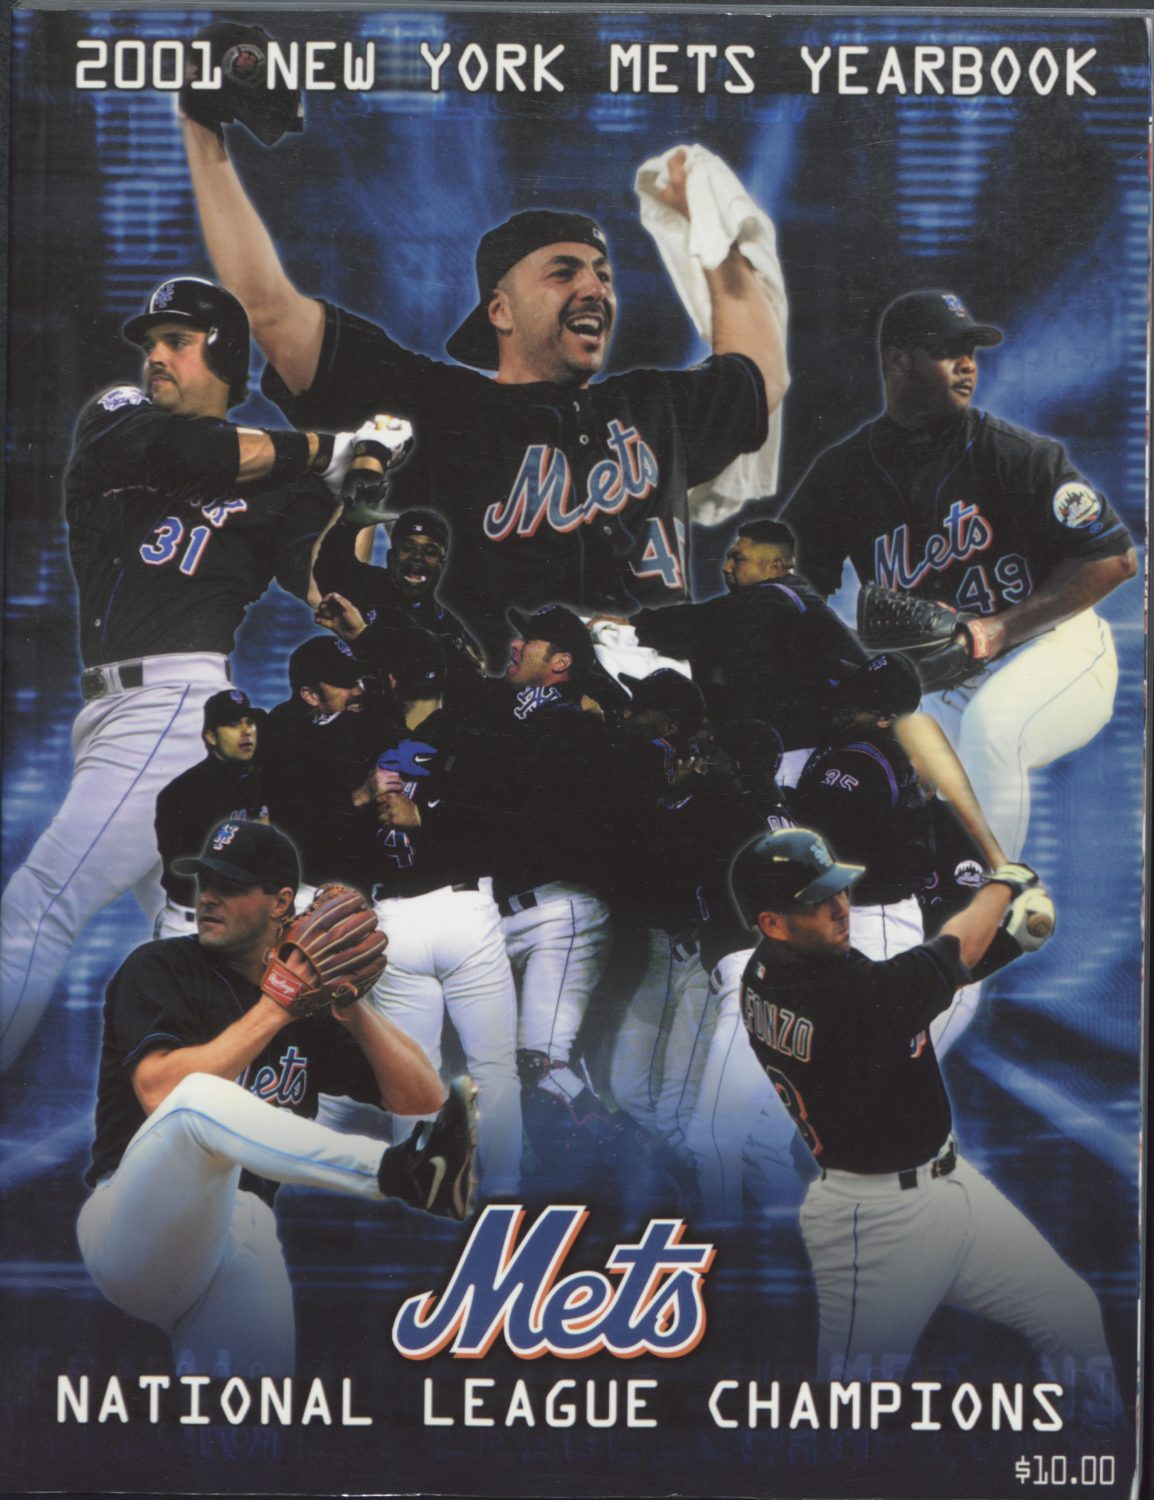 2001 Mets Yearbook: Celebrating 2000 NL Champs